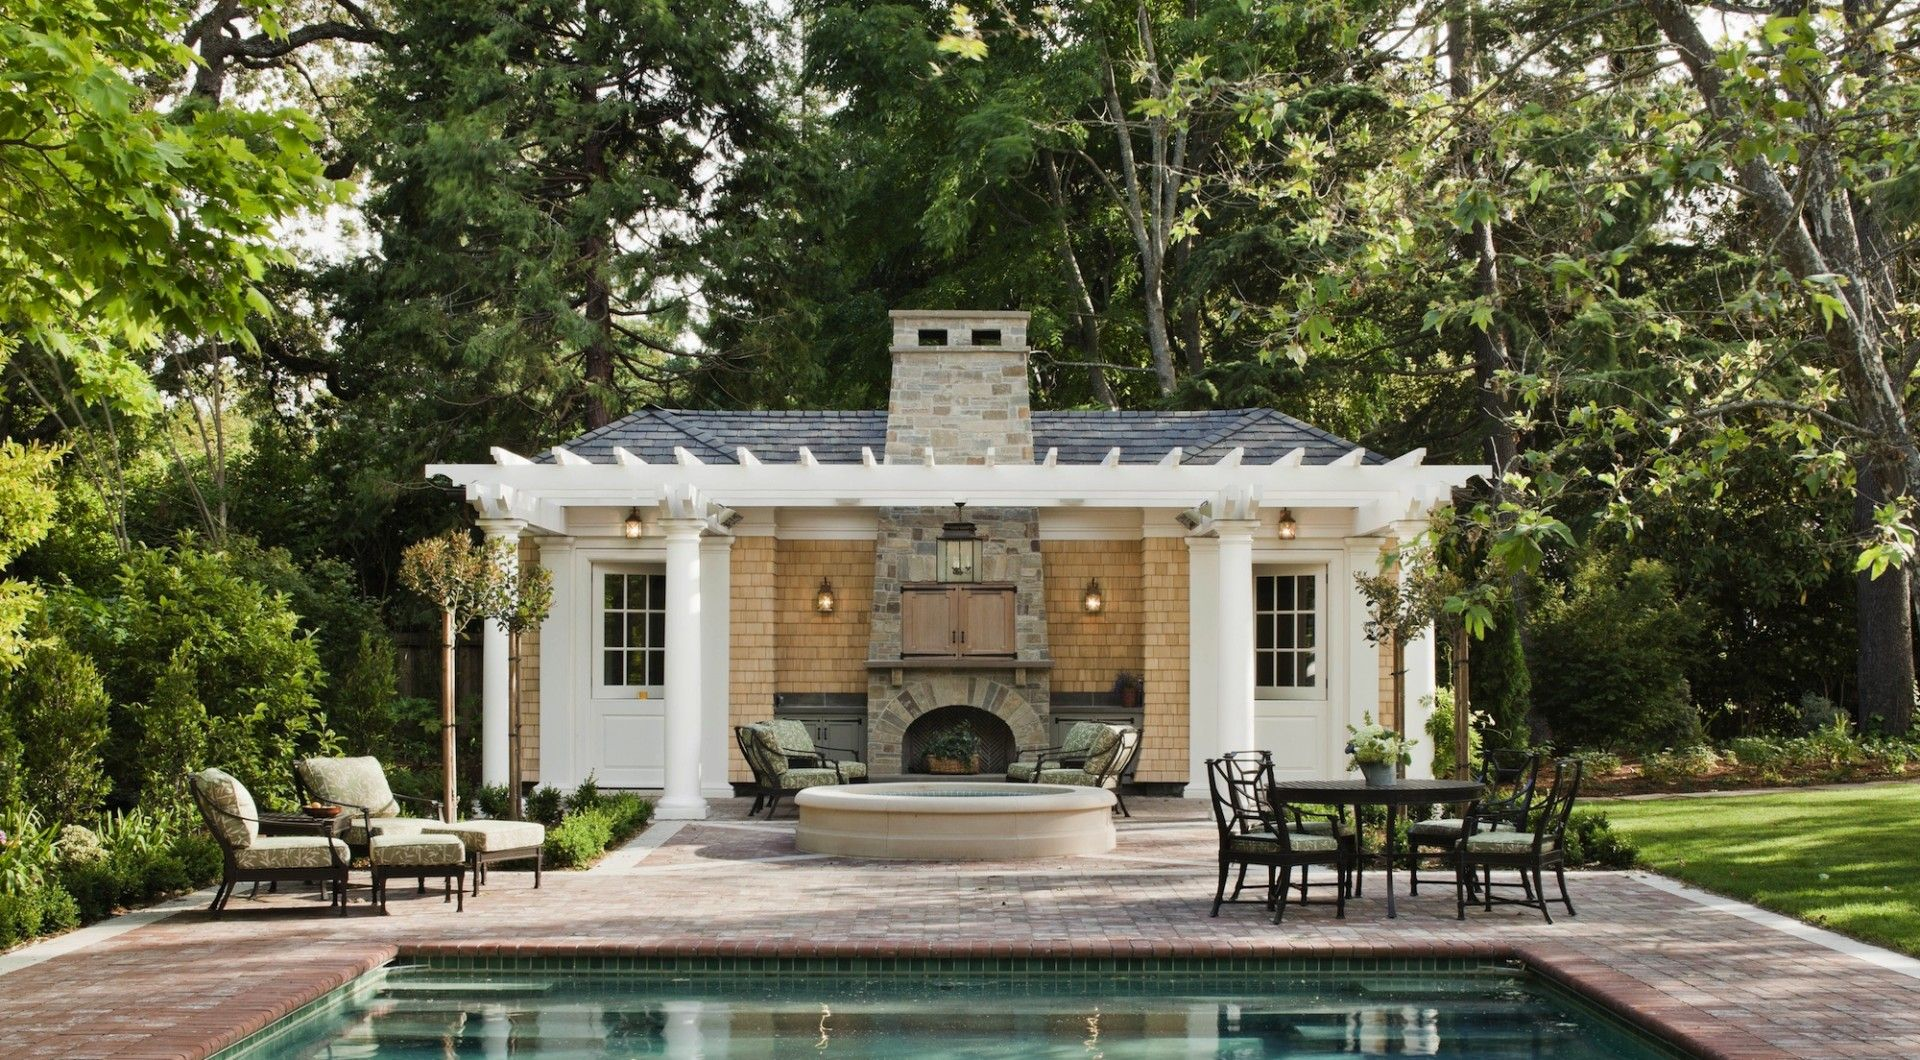 Pool House Designs Stunning Traditional Outdoor Fireplace Pool House Designs Ideas